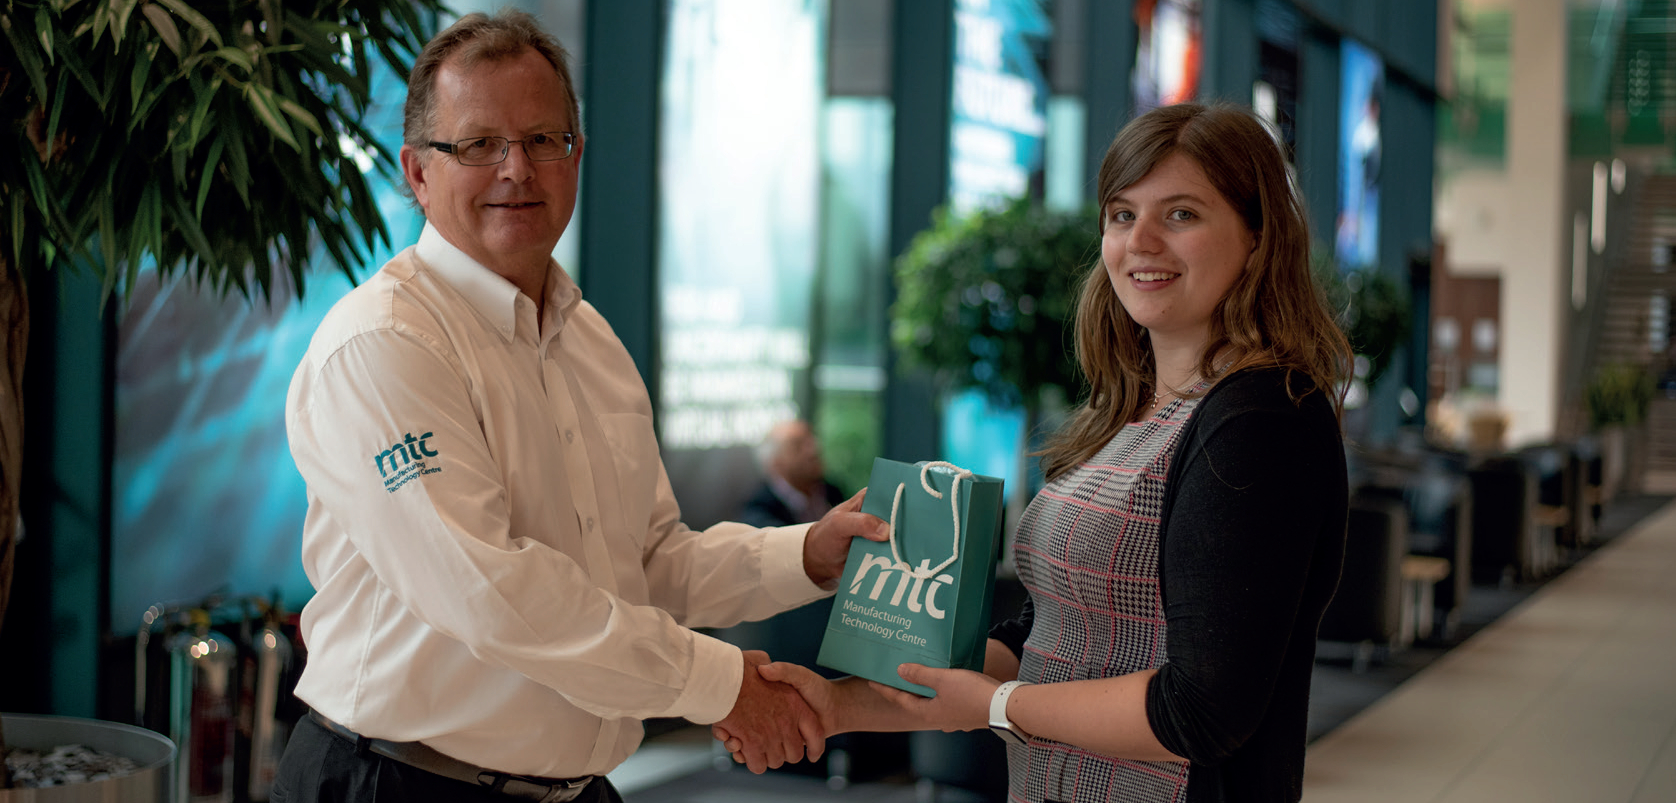 The MTC's senior business development manager Nigel Knapp with PhD student Laurissa Havins.